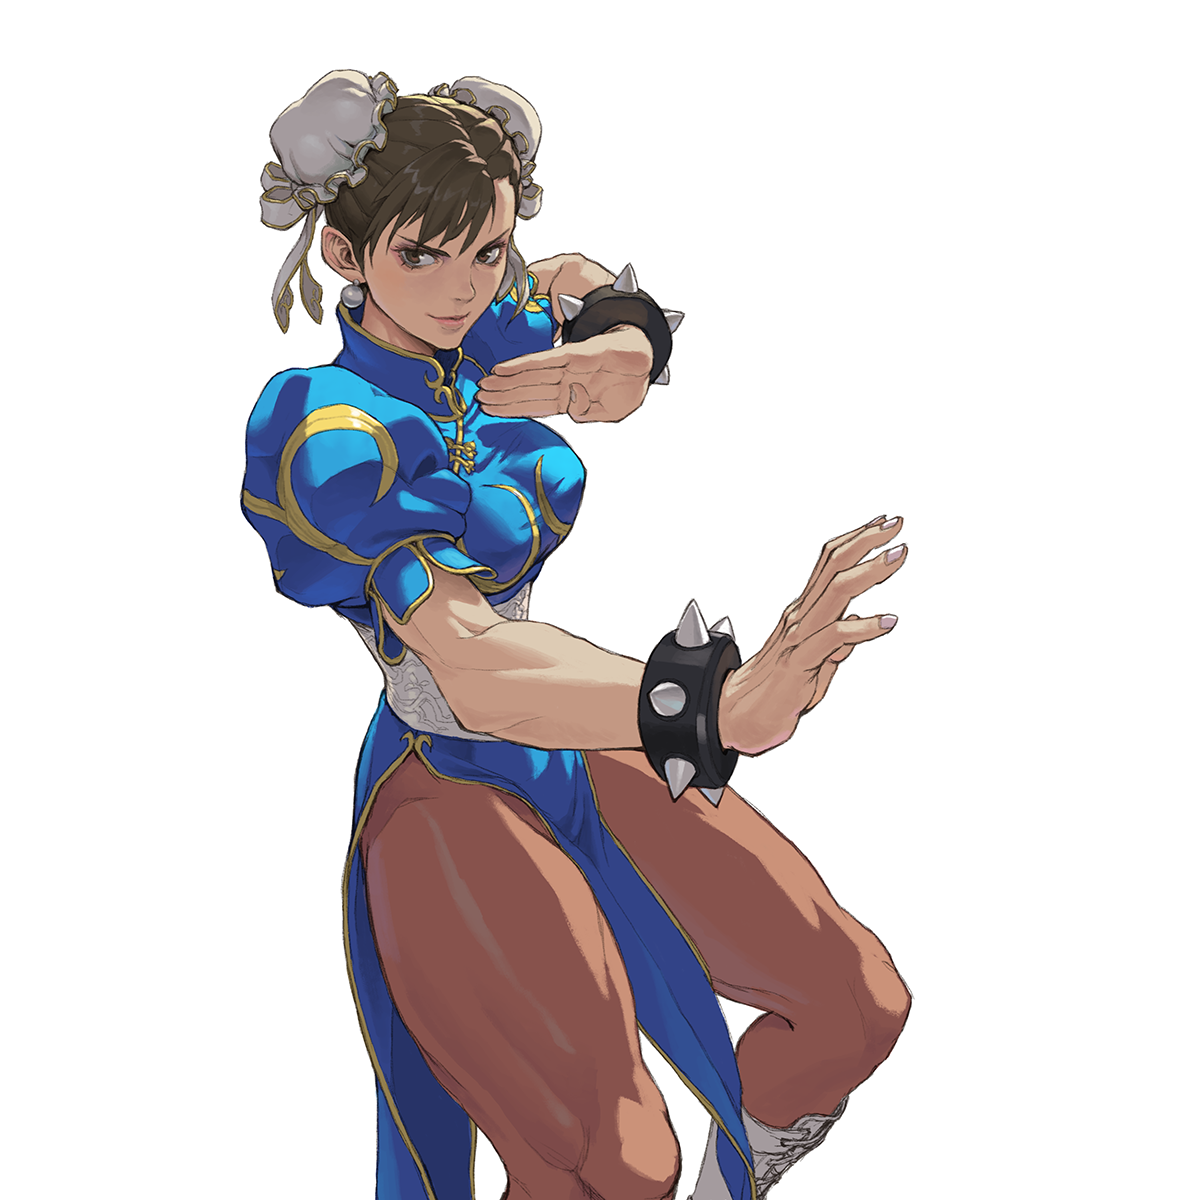 Chunli loped fan art